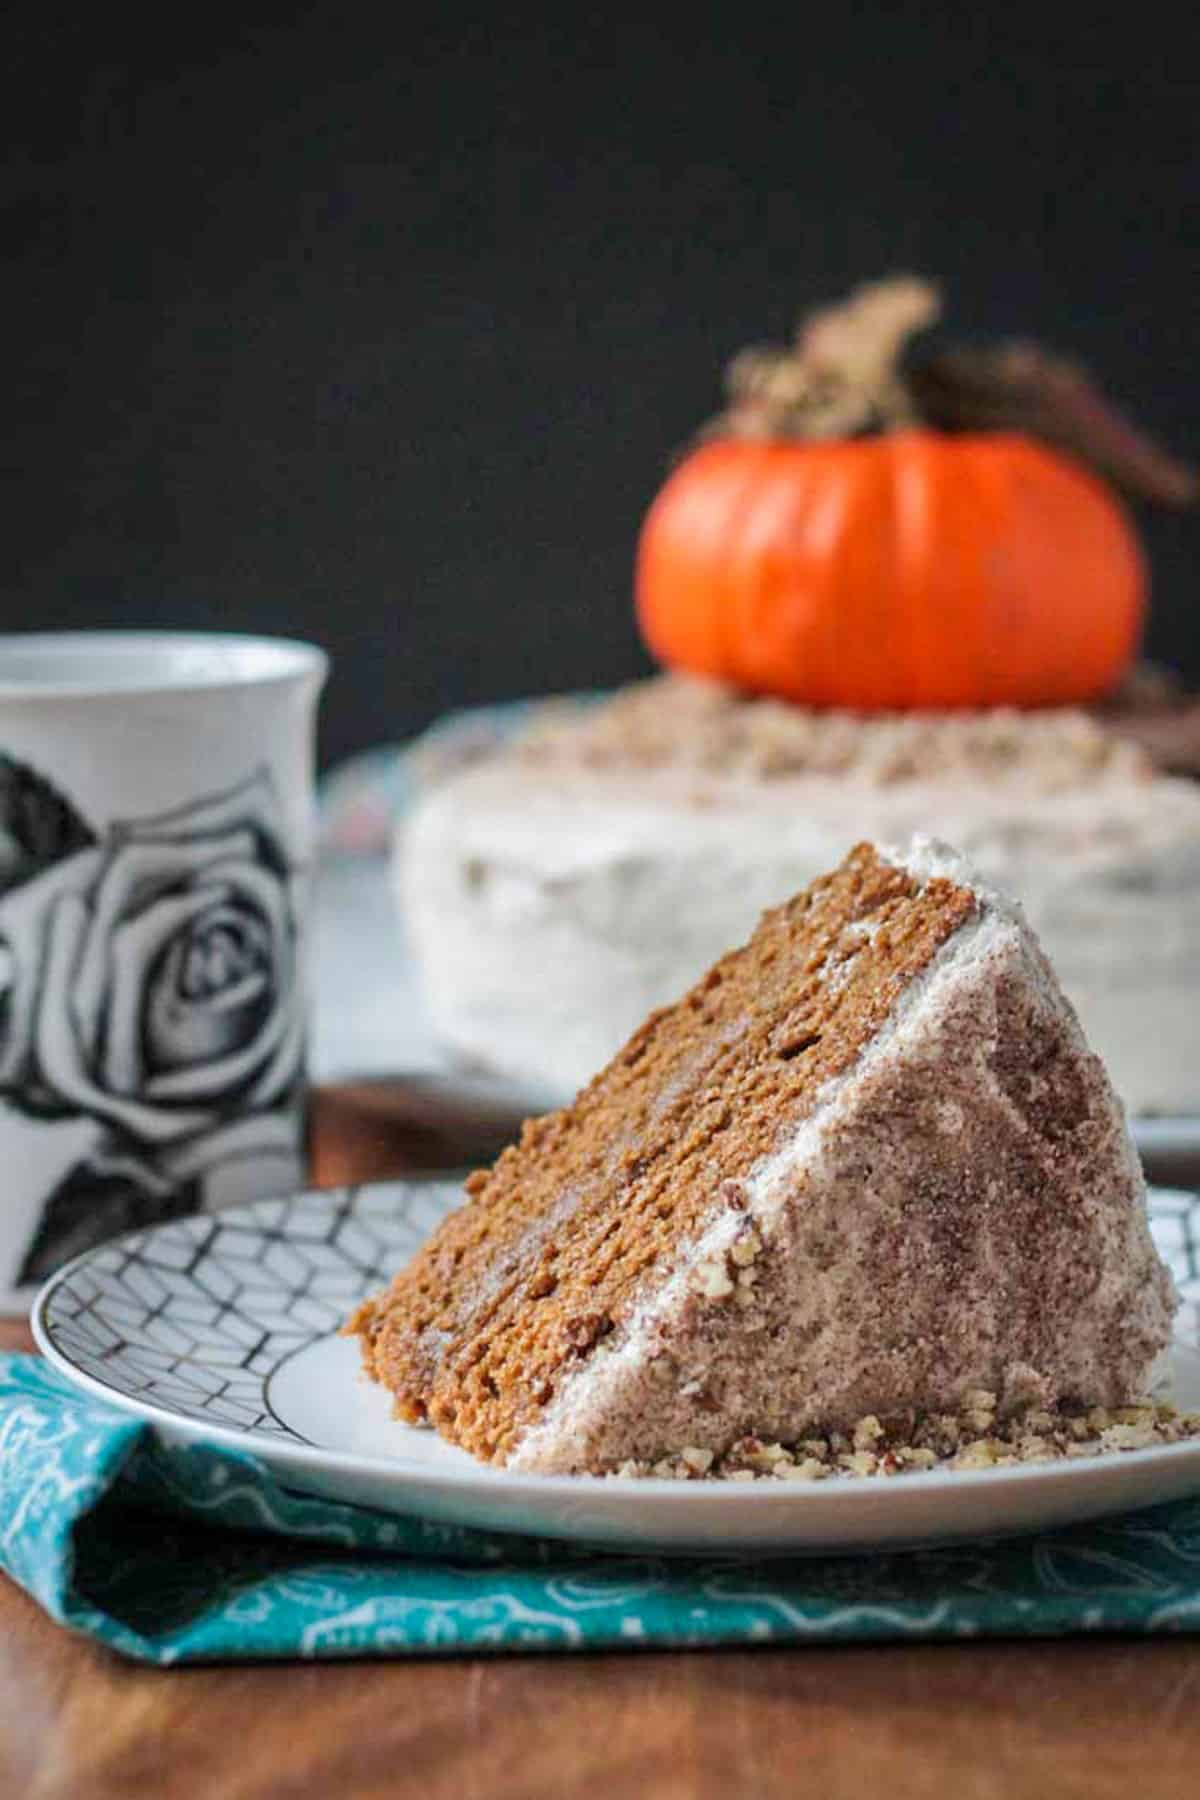 Slice of pumpkin layer cake on its side on plate with the full cake behind.